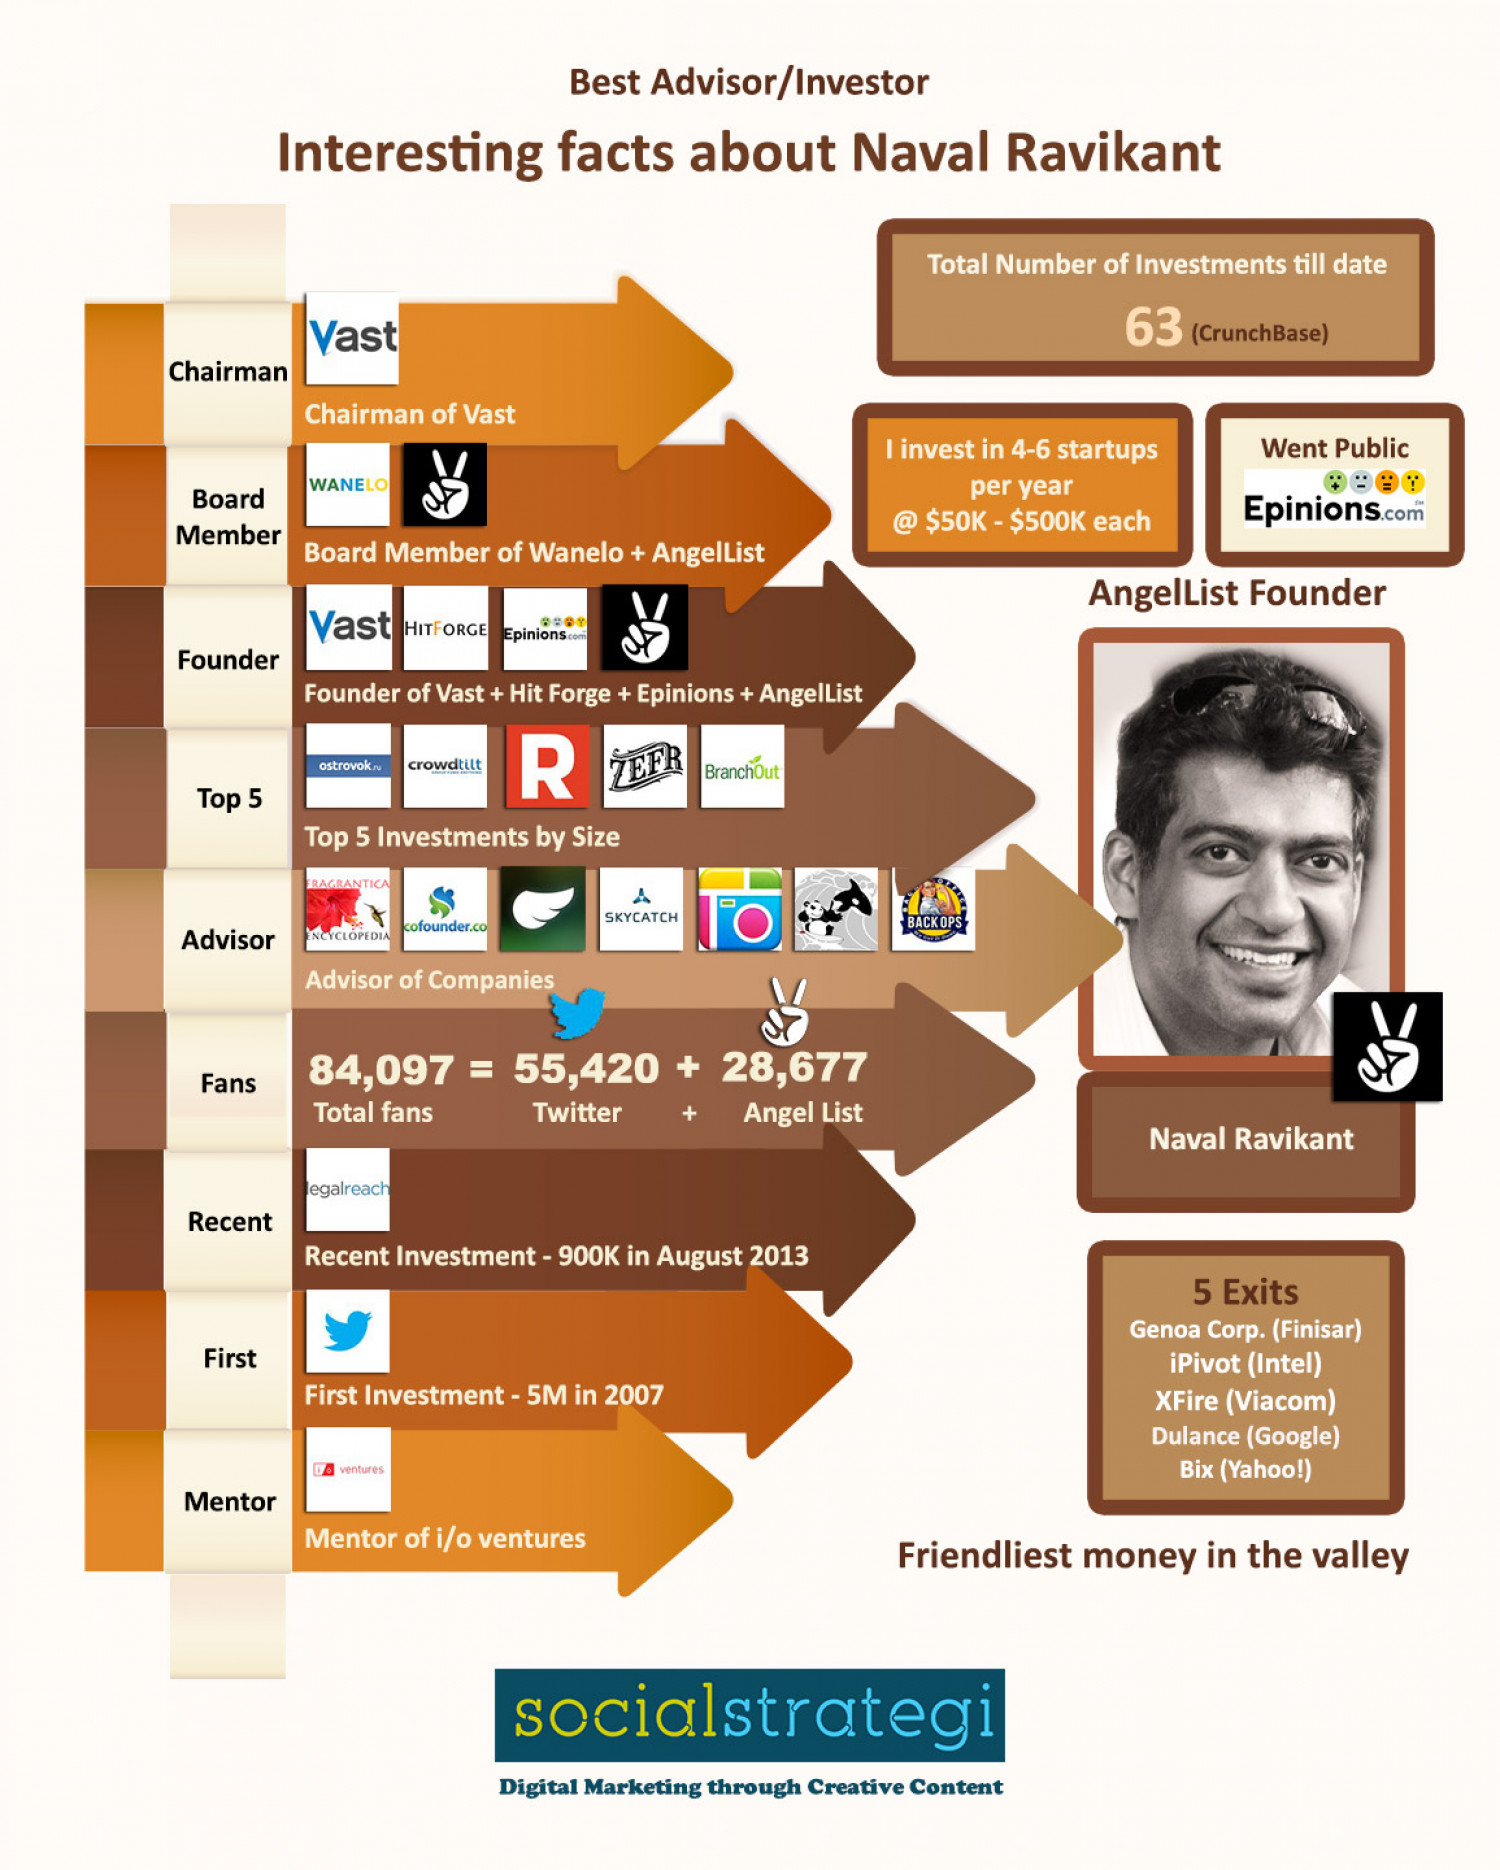 The friendliest money in the valley: Naval Ravikant Infographic